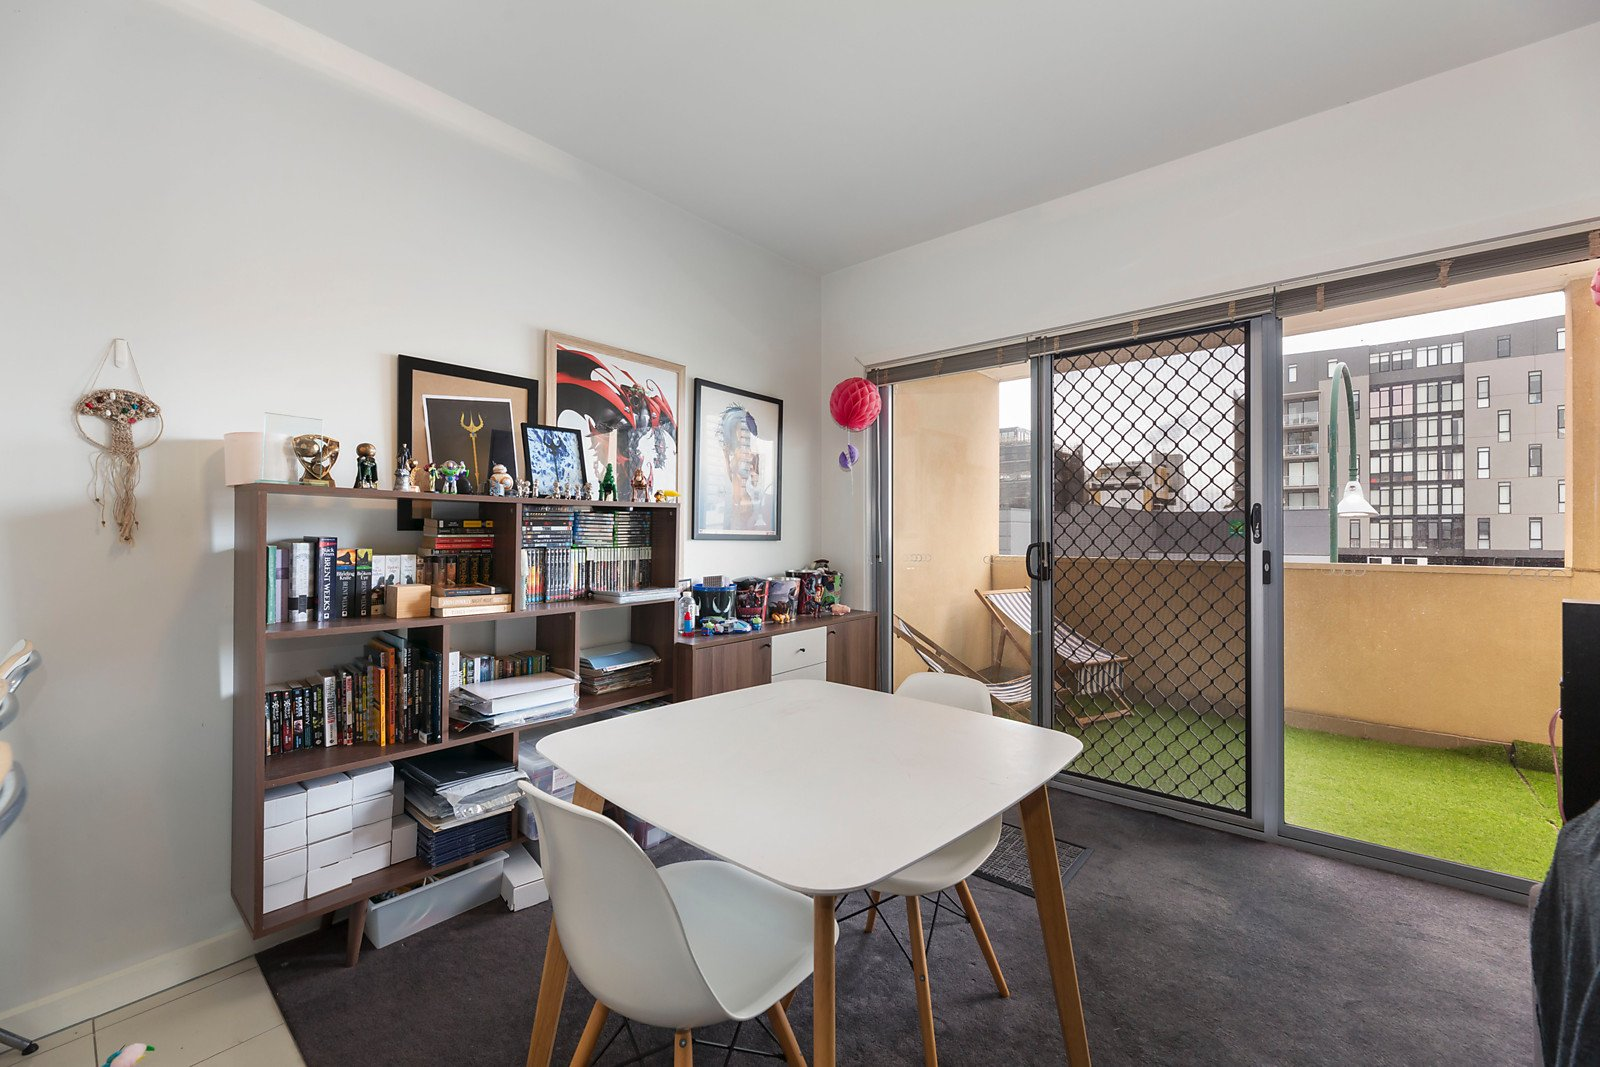 6/40 Young Street, Moonee Ponds, VIC, 3039 image 3